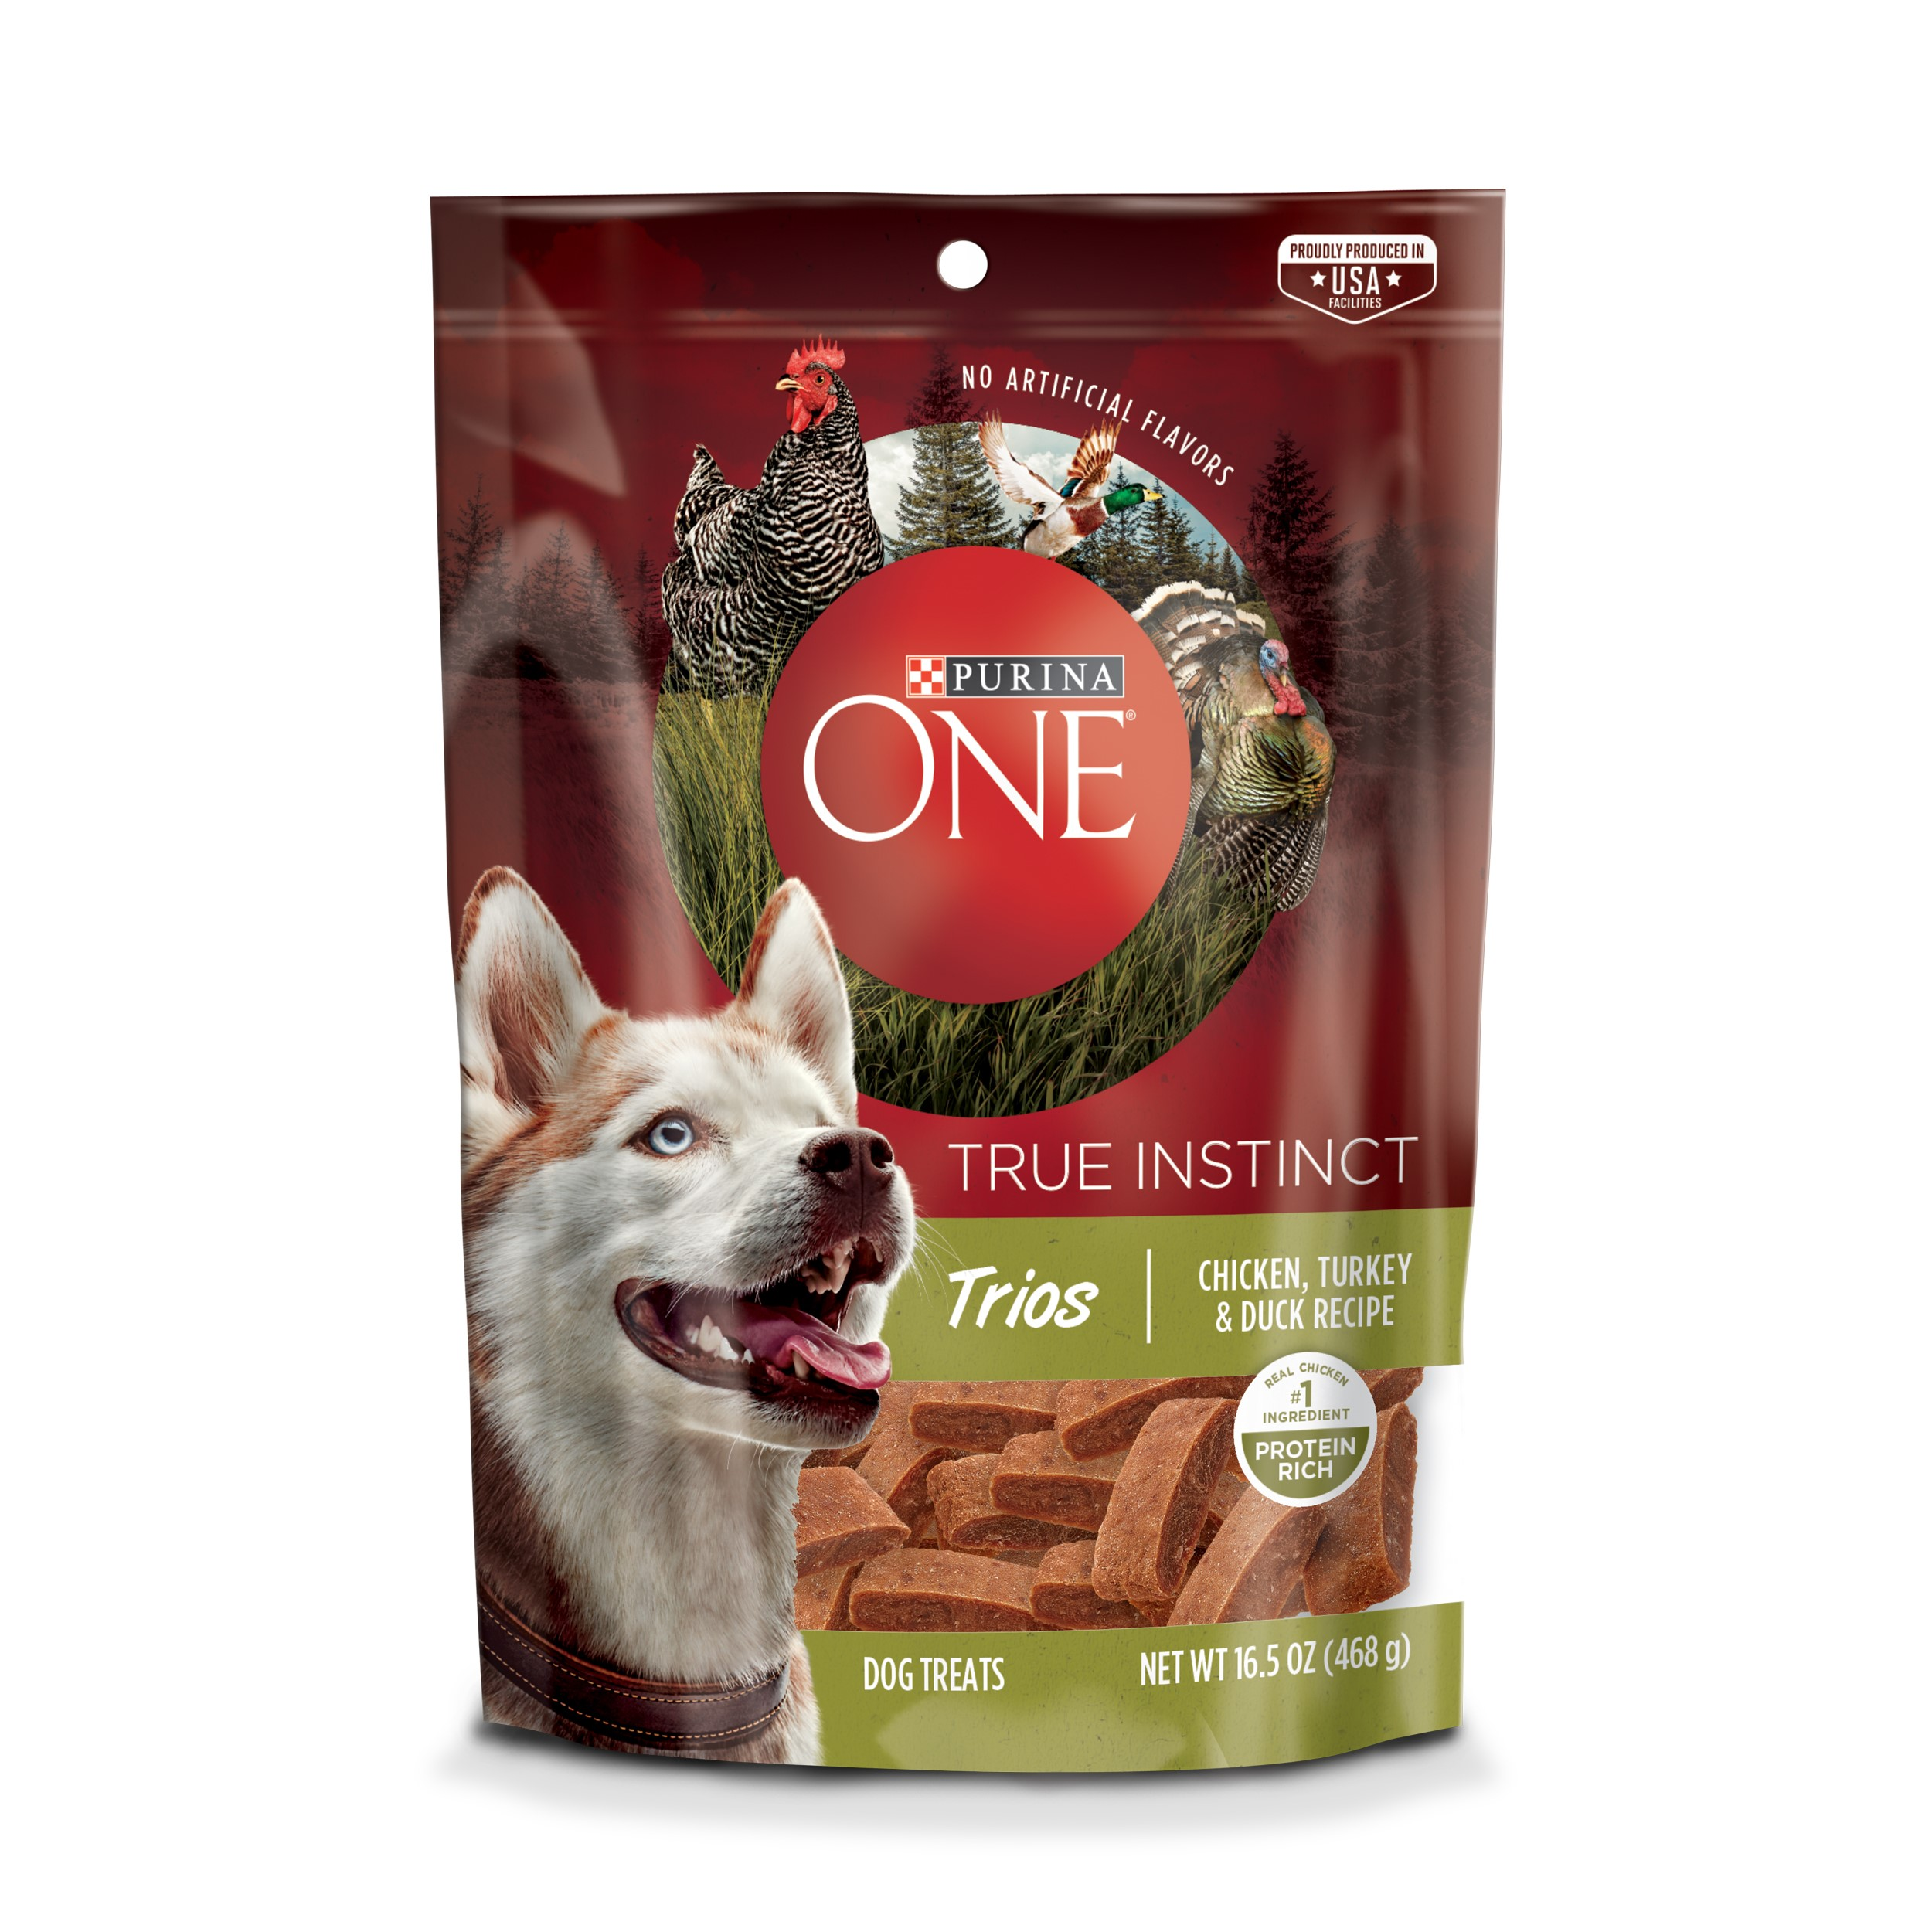 Purina ONE True Instinct Trios Chicken, Turkey & Duck Recipe Dog Treats, 16.5 oz. Pouch